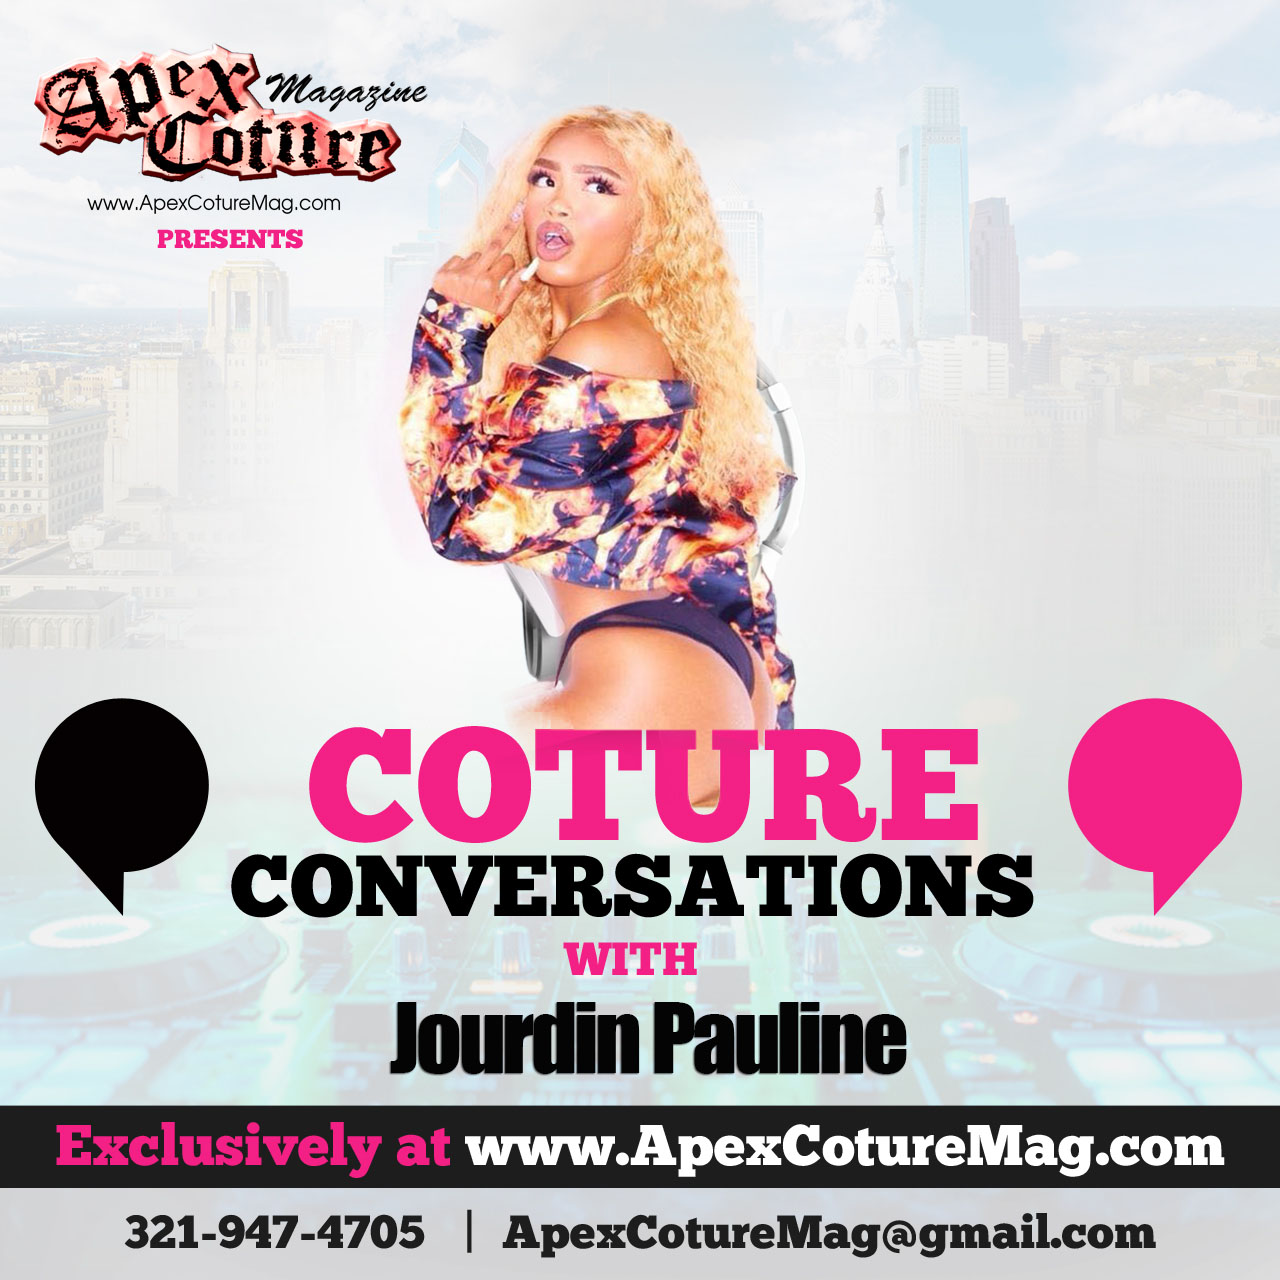 Jourdin Pauline Coture Conversation